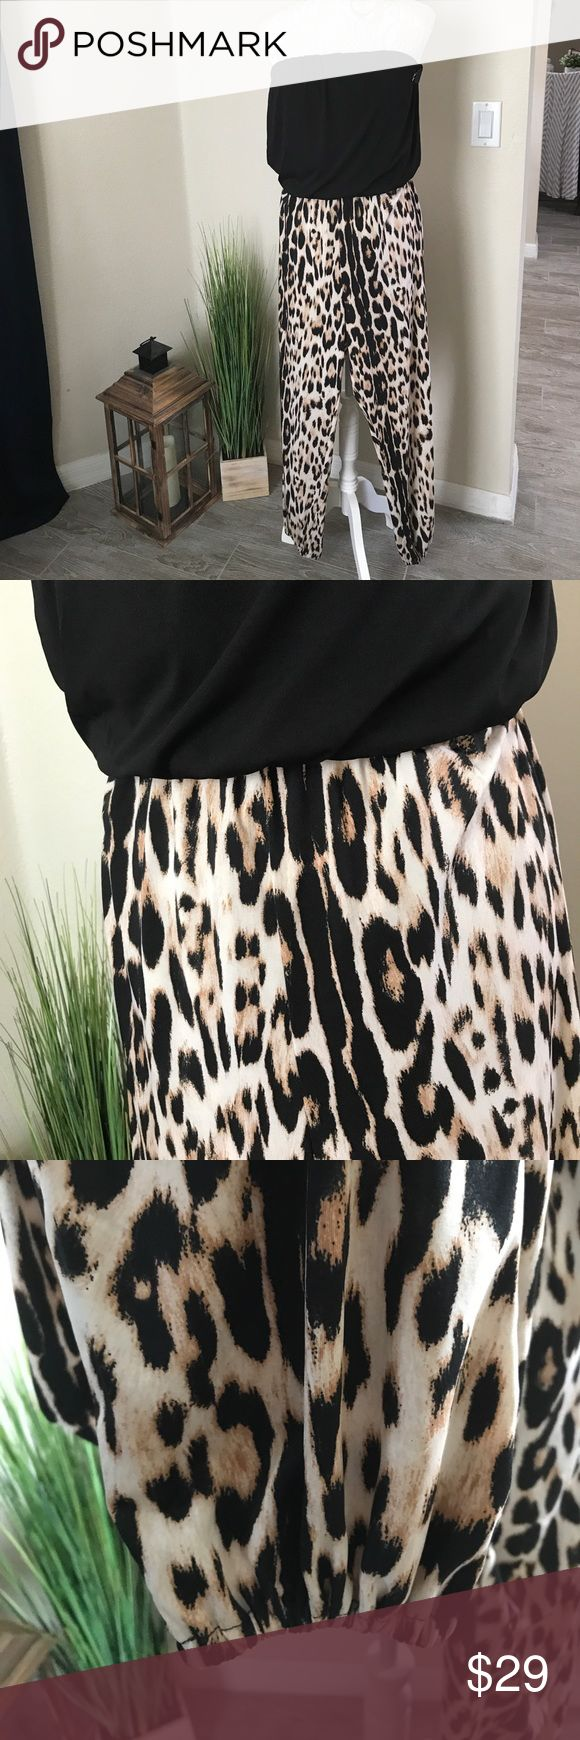 """Sexy & Alluring Animal Print Strapless Jumpsuit This NWOT Jumpsuit is SEXY! Alluring animal print, elasticized ankle pants with a black bandeau, fully lined, flounced top make this a summertime hit - pair it with some strappy stiletto sandals and you'll be ready to prowl the night. It is new, never worn! 31"""" inseam. From a smoke free home. 🍷 VENUS Pants Jumpsuits & Rompers"""